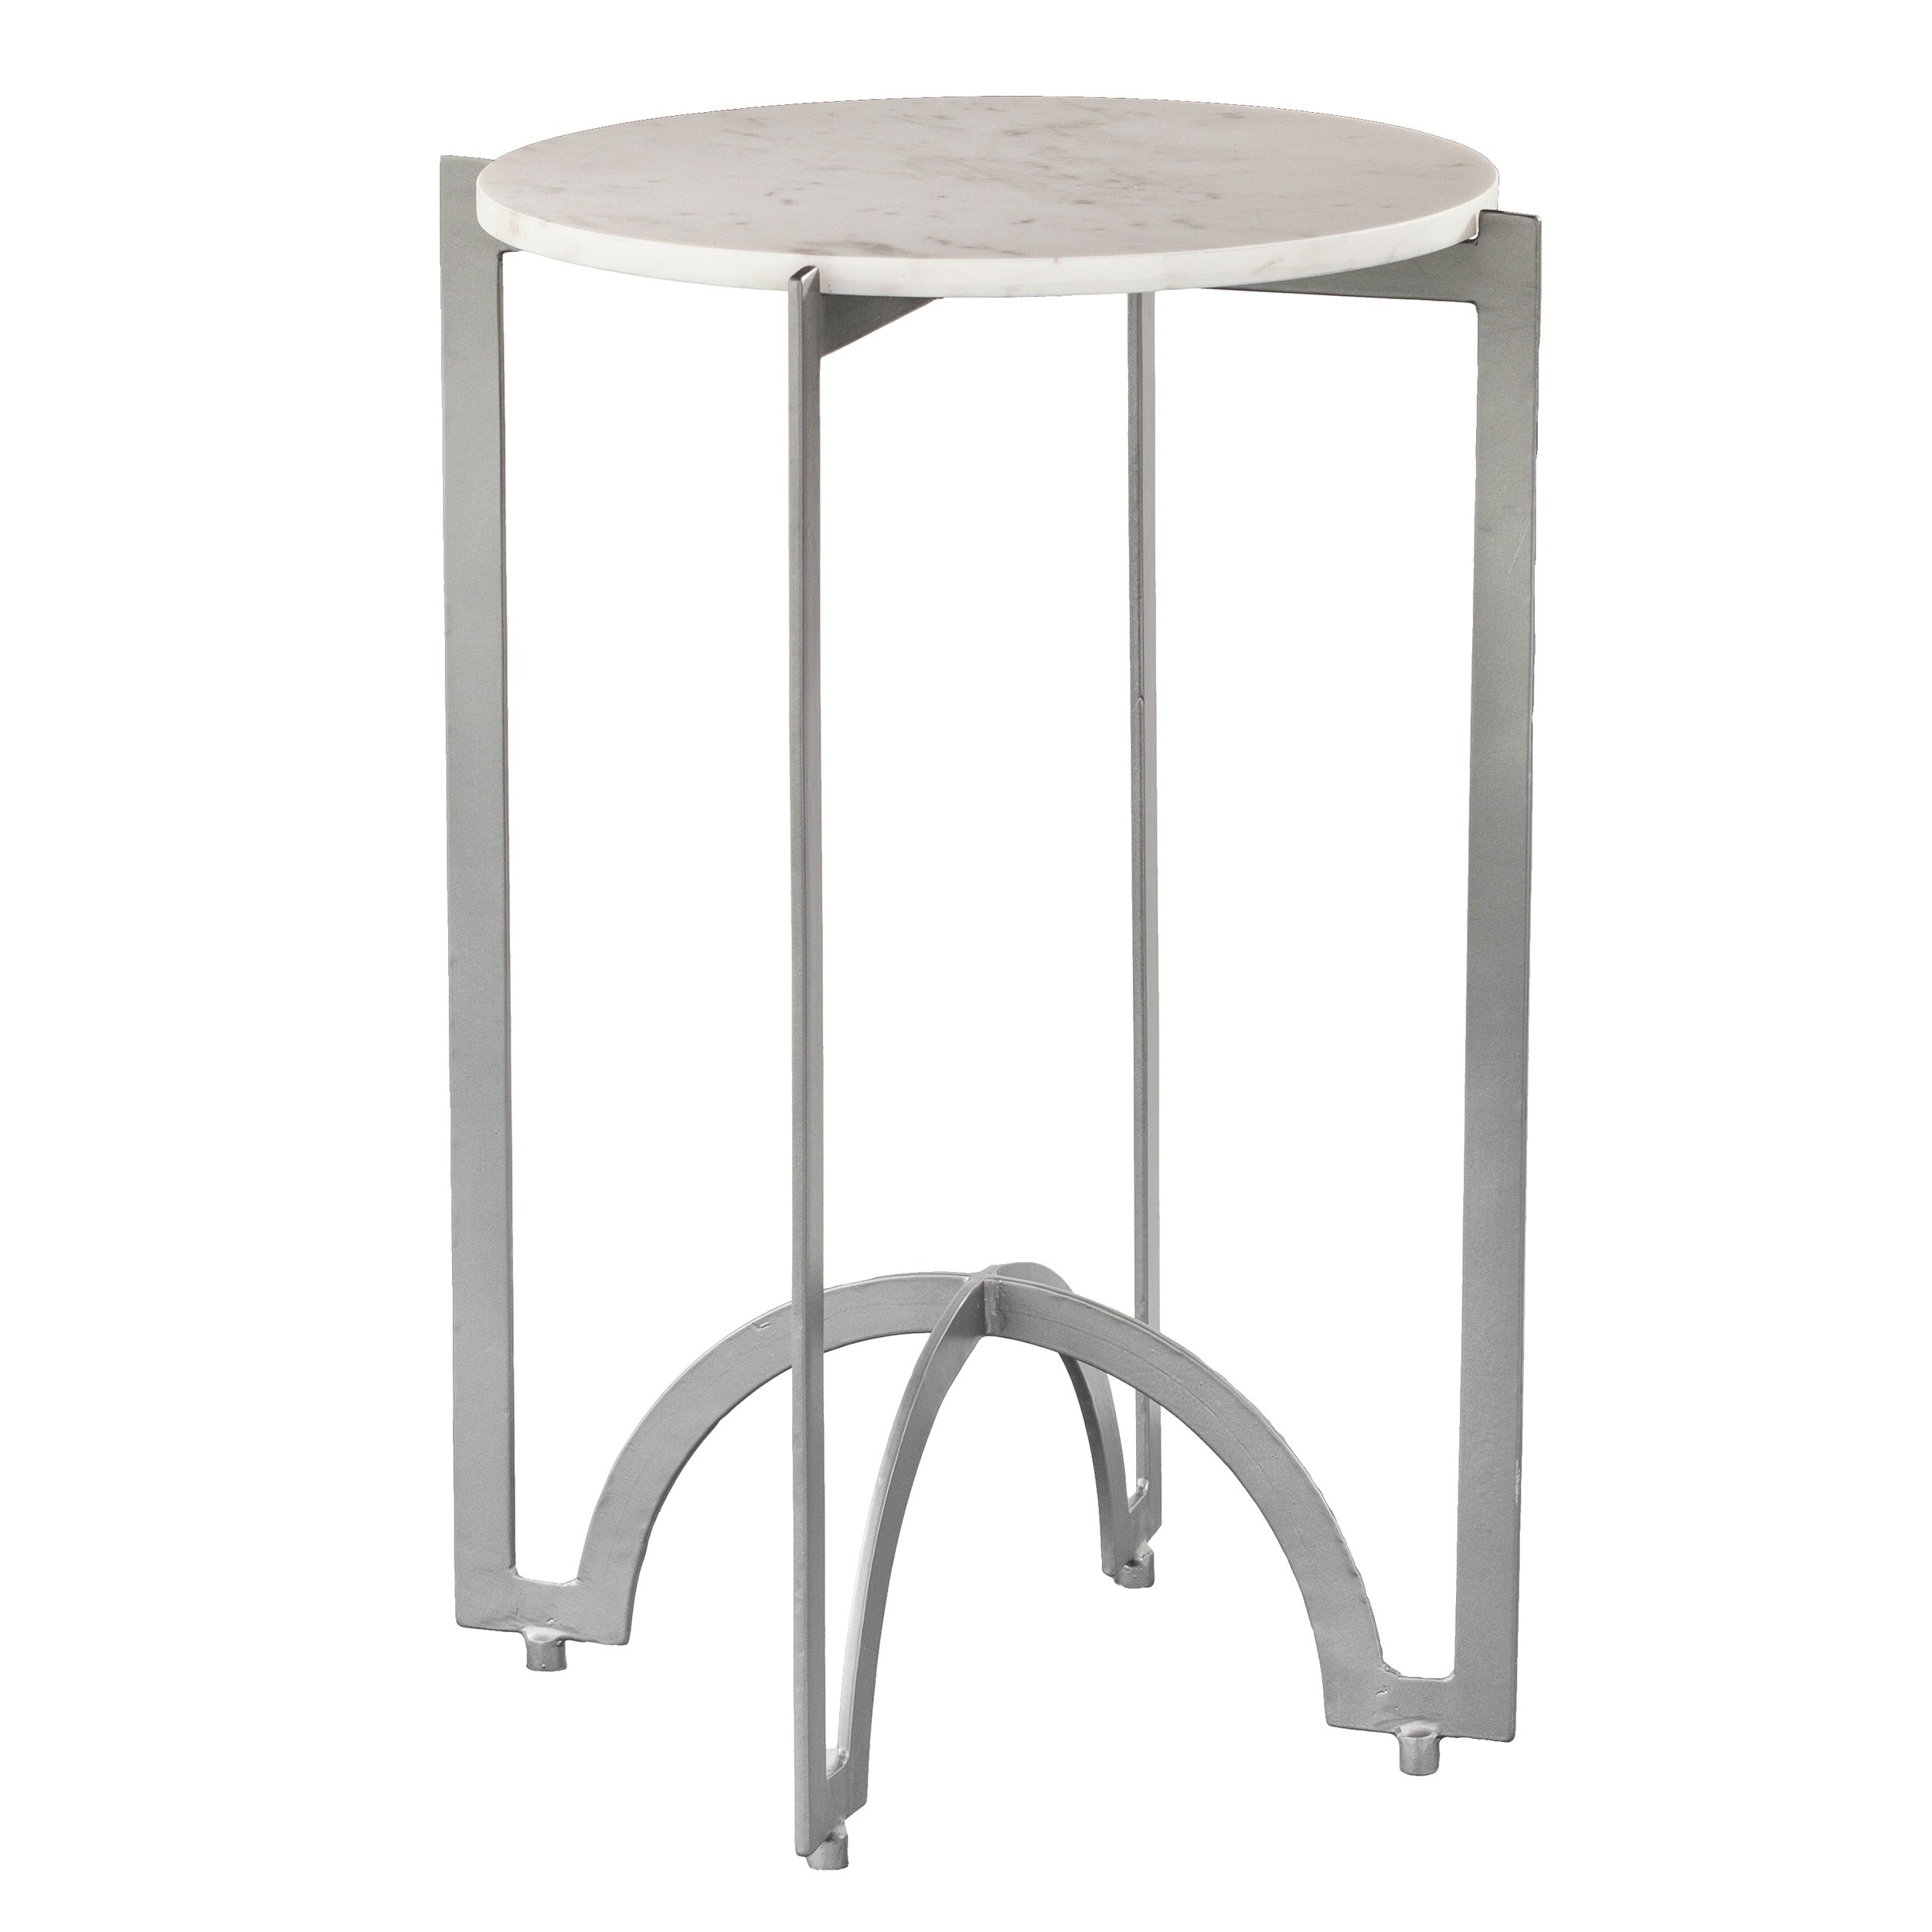 harper blvd therra round metal accent table marble top free shipping today dinner rattan outdoor furniture clearance canvas patio umbrella large grey lamp fold wrought iron